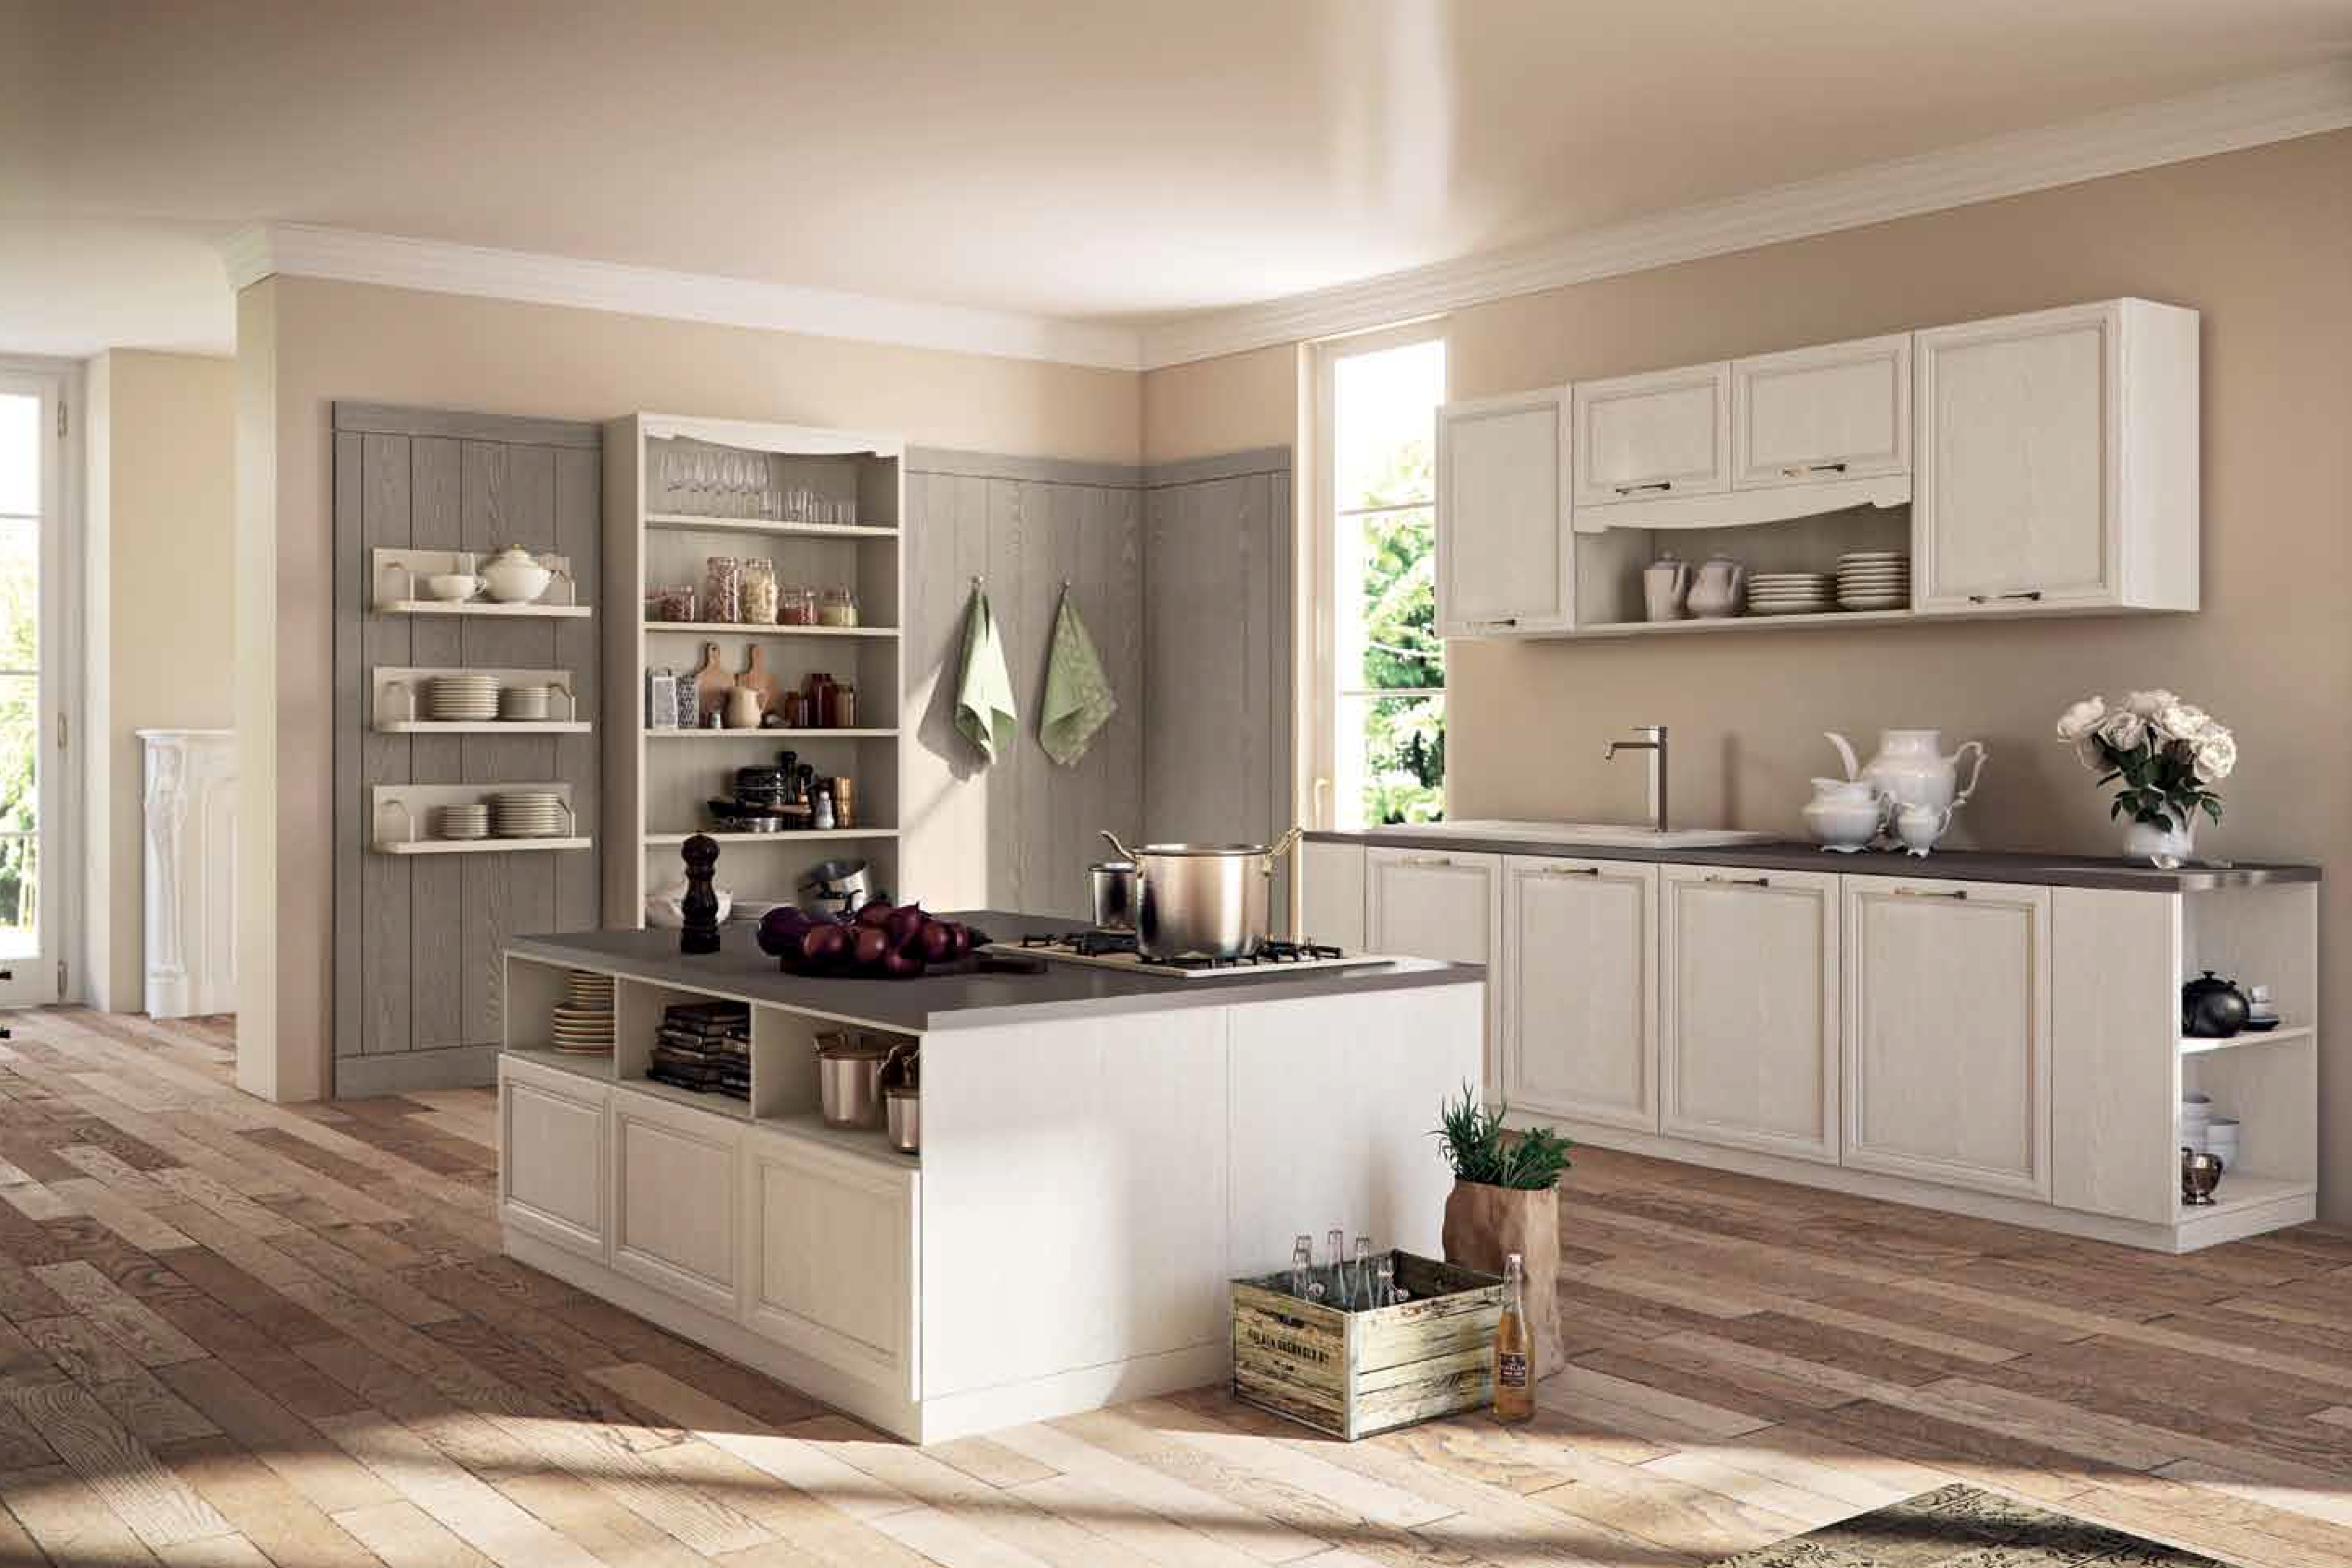 Stile country provenzale e shabby chic 4a arreda - Cucine stile country provenzale ...